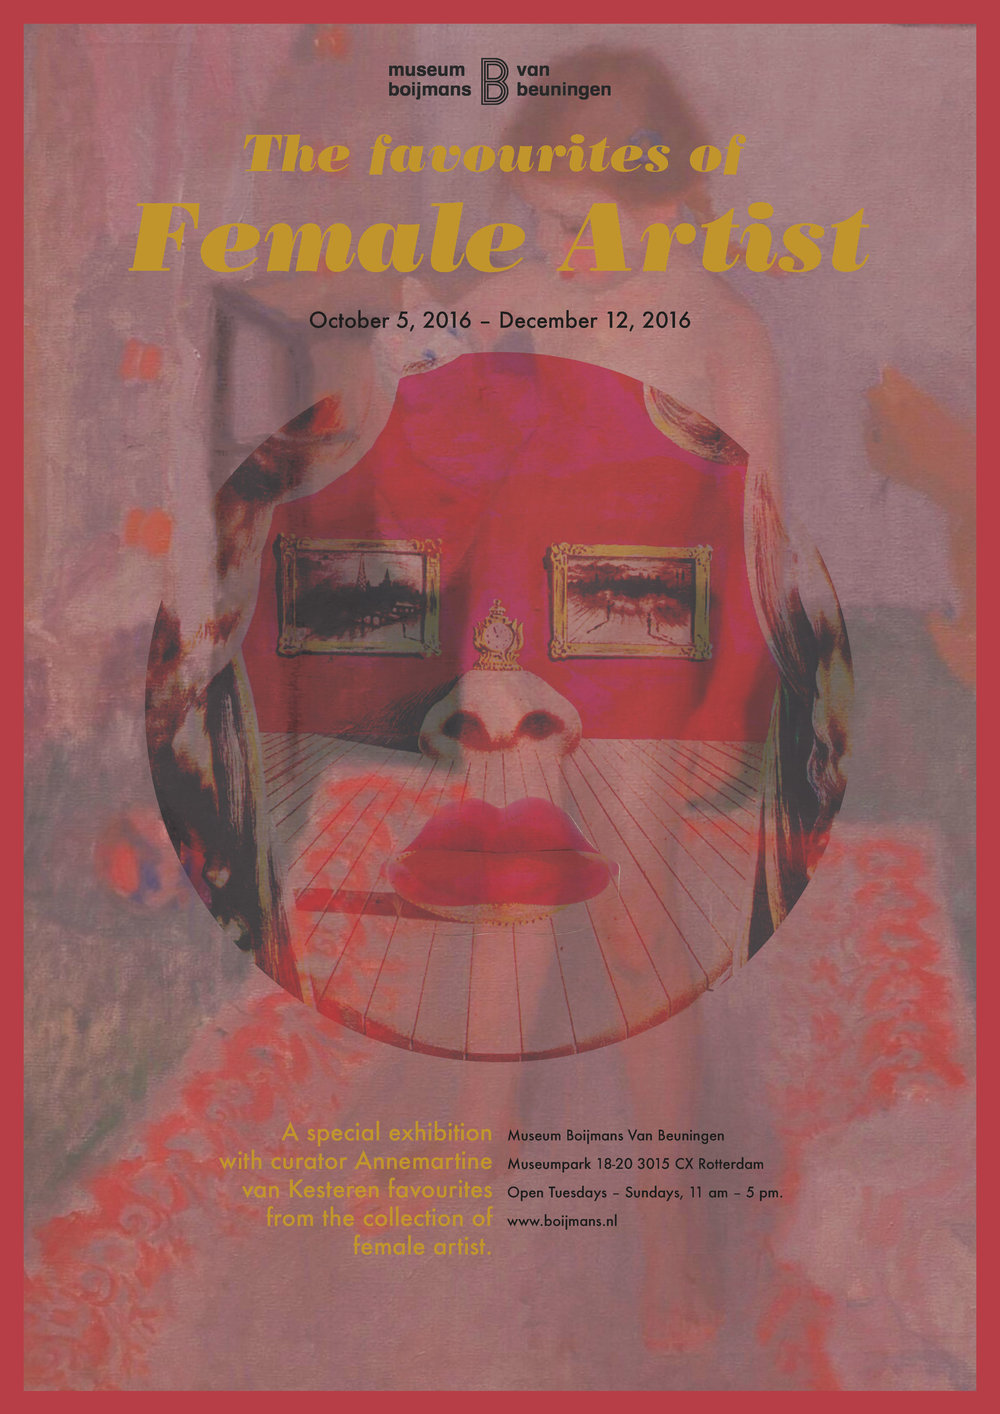 favourites of female artist poster.jpg